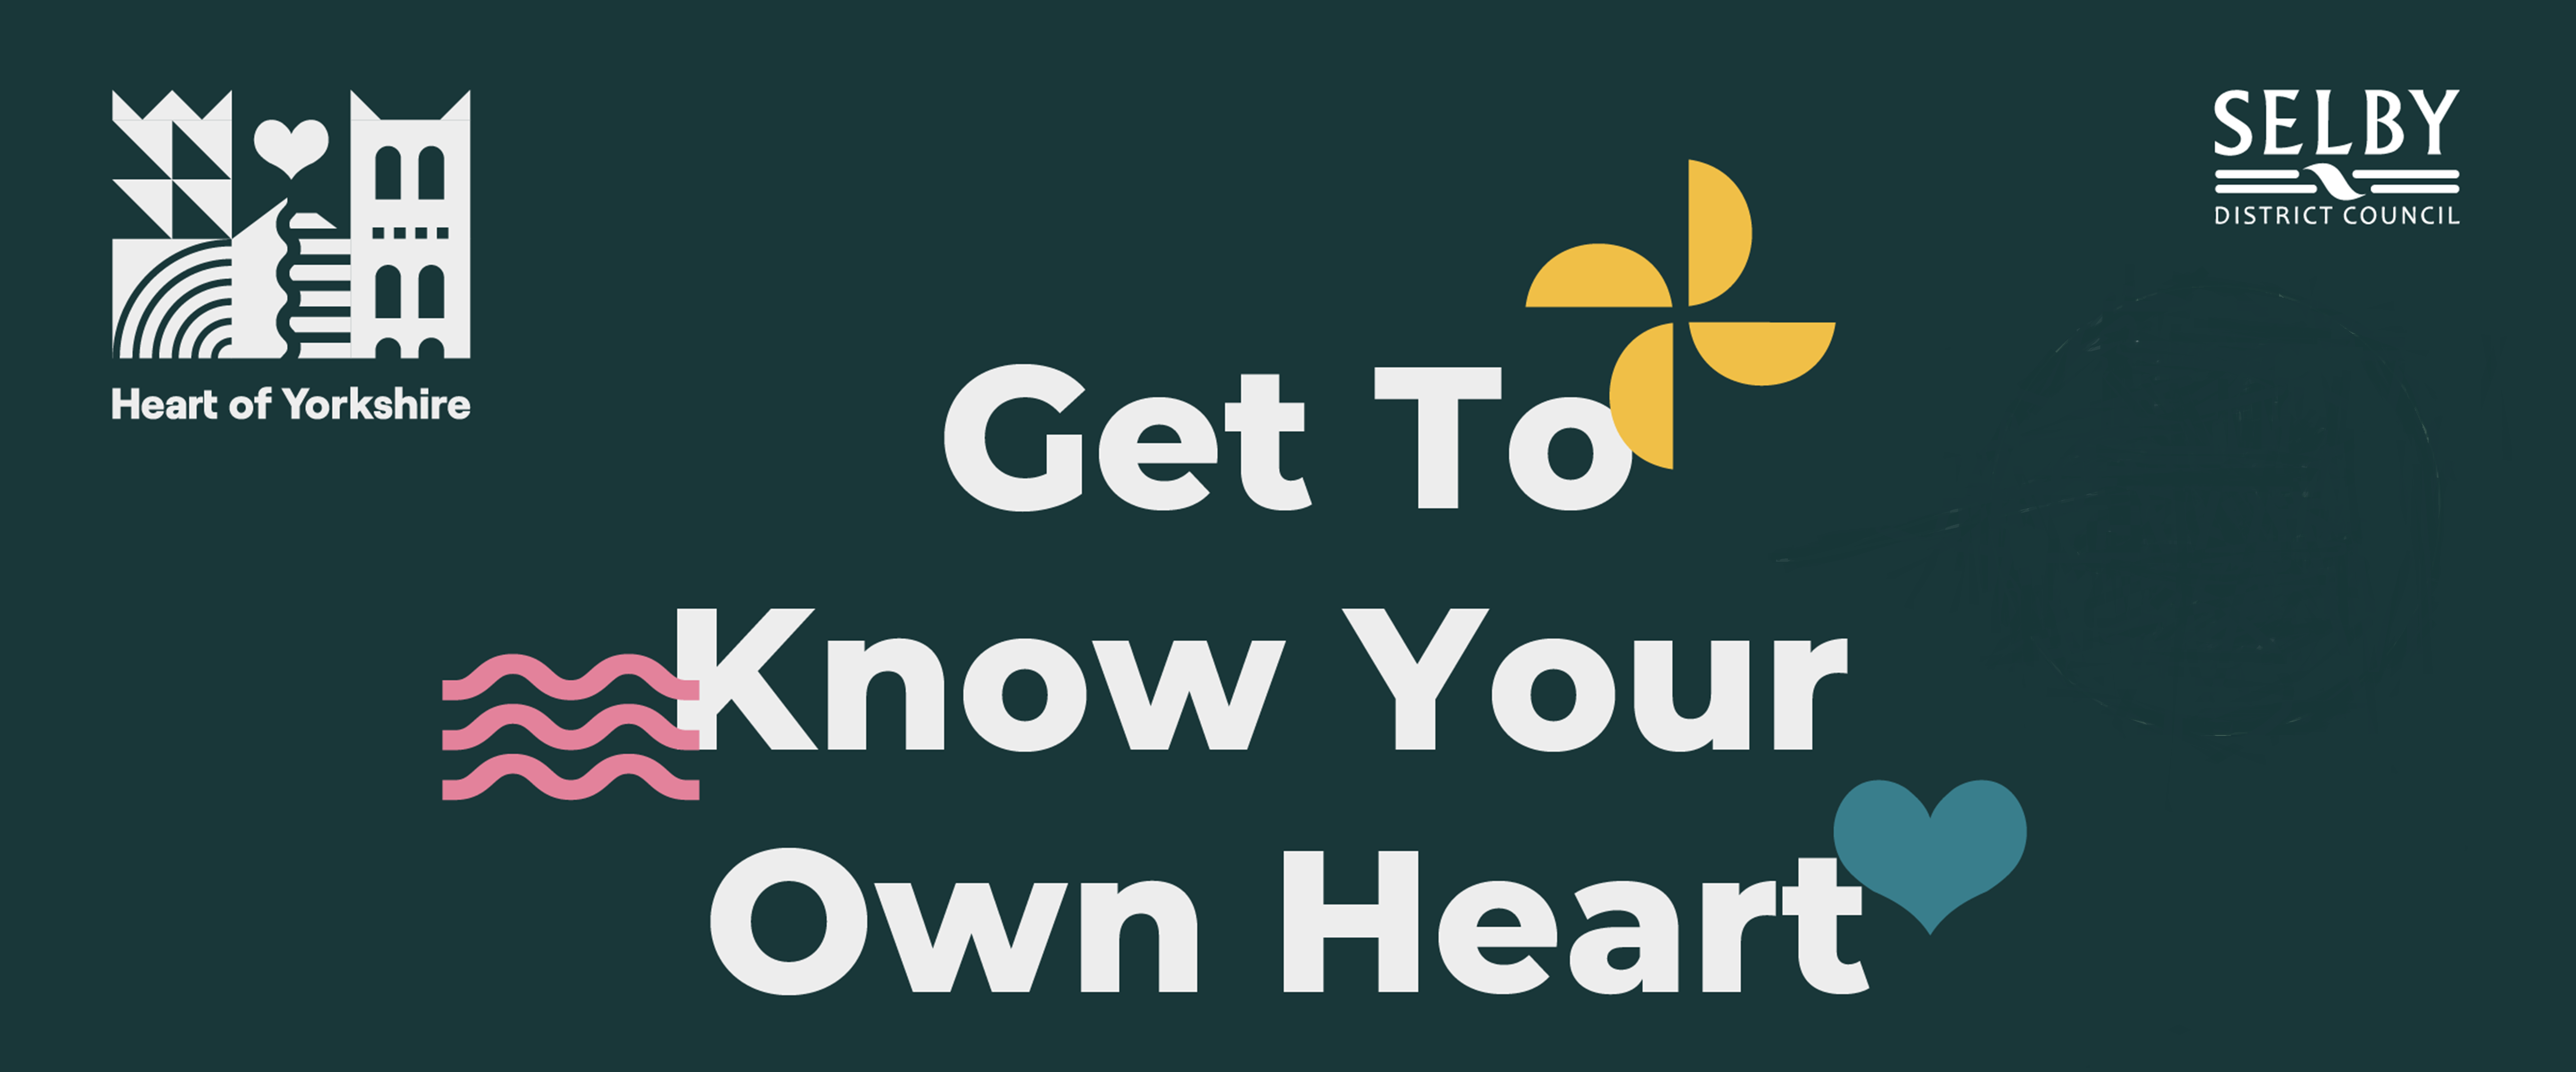 Get To Know Your Own Heart Banner